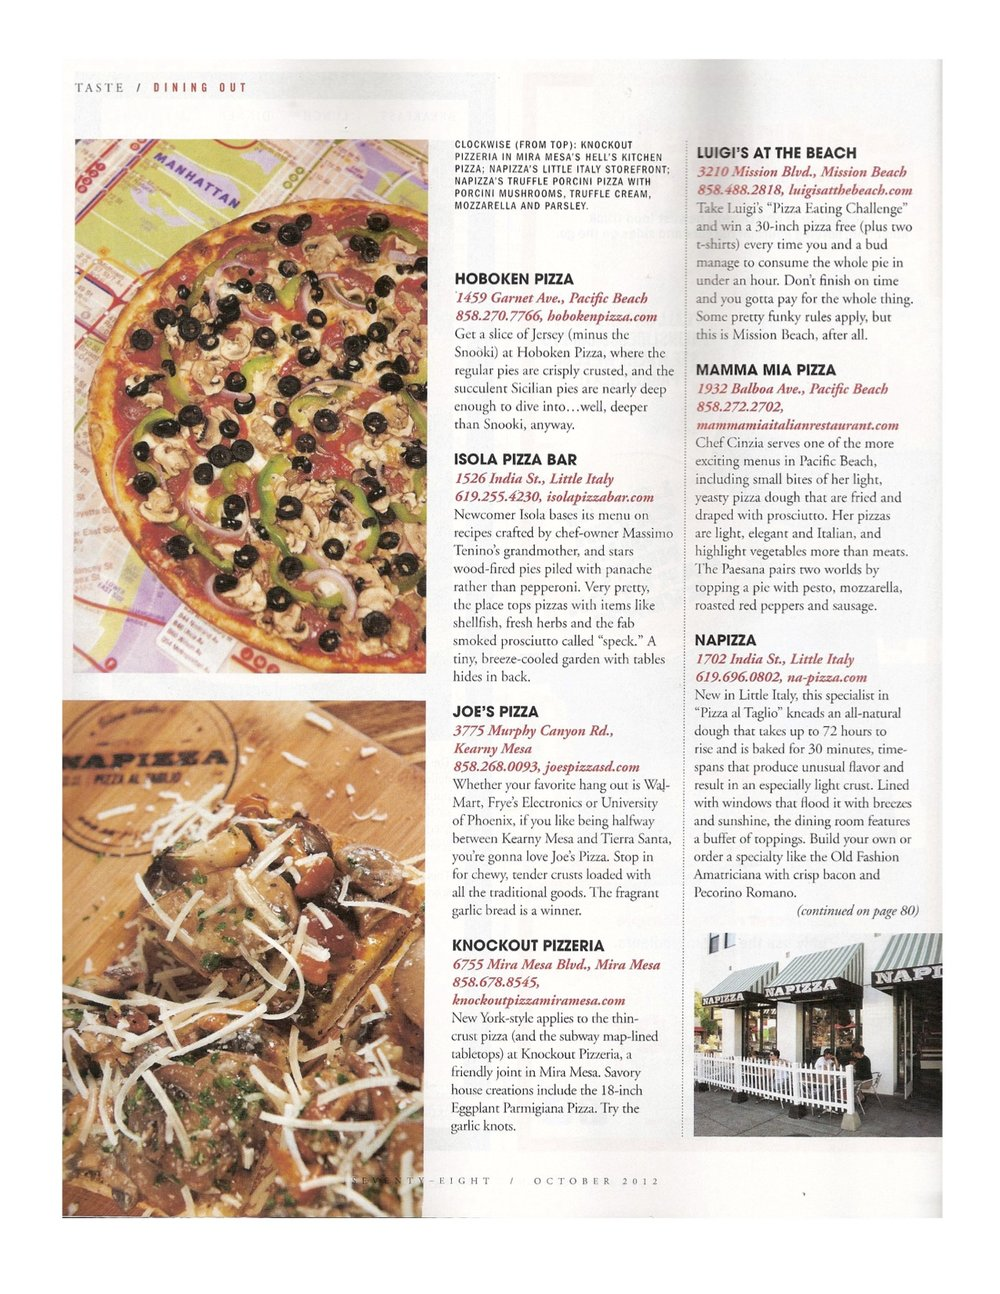 3-Isola Pizza Bar_PACIFIC Magazine_October 2012.jpg